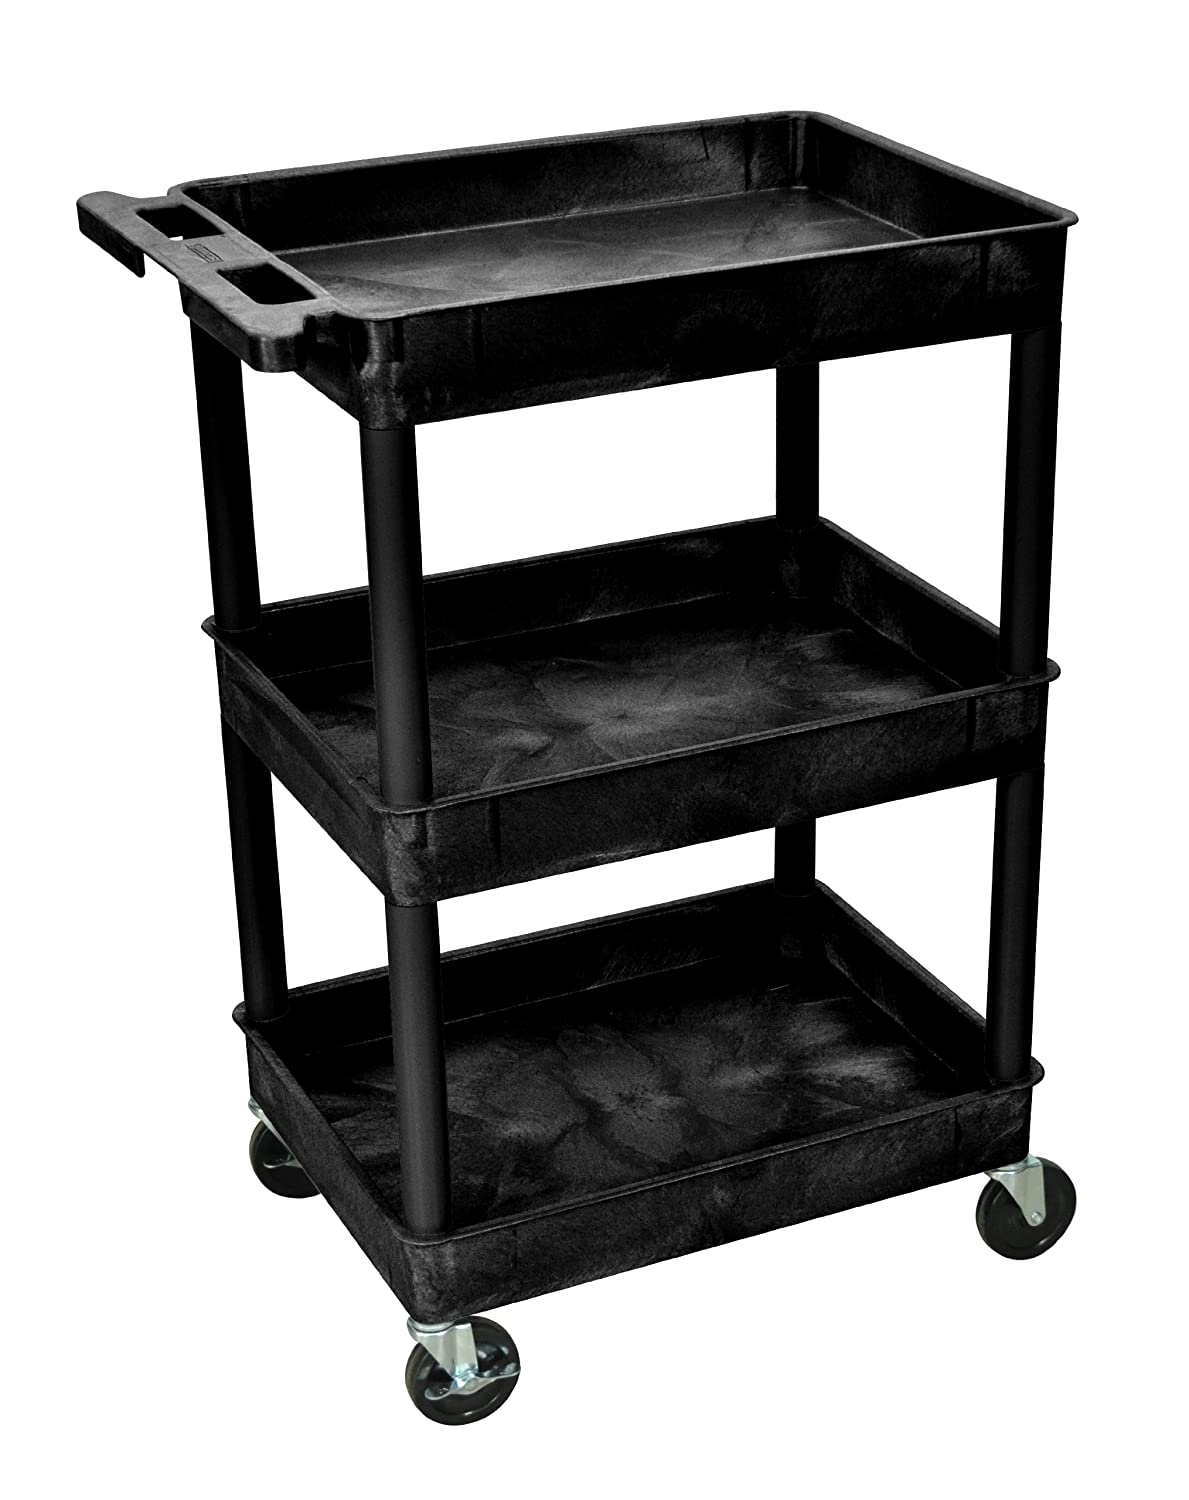 Luxor STC111-B 40.5-Inch Automotive Utility Cart with 3 Shelves, Black